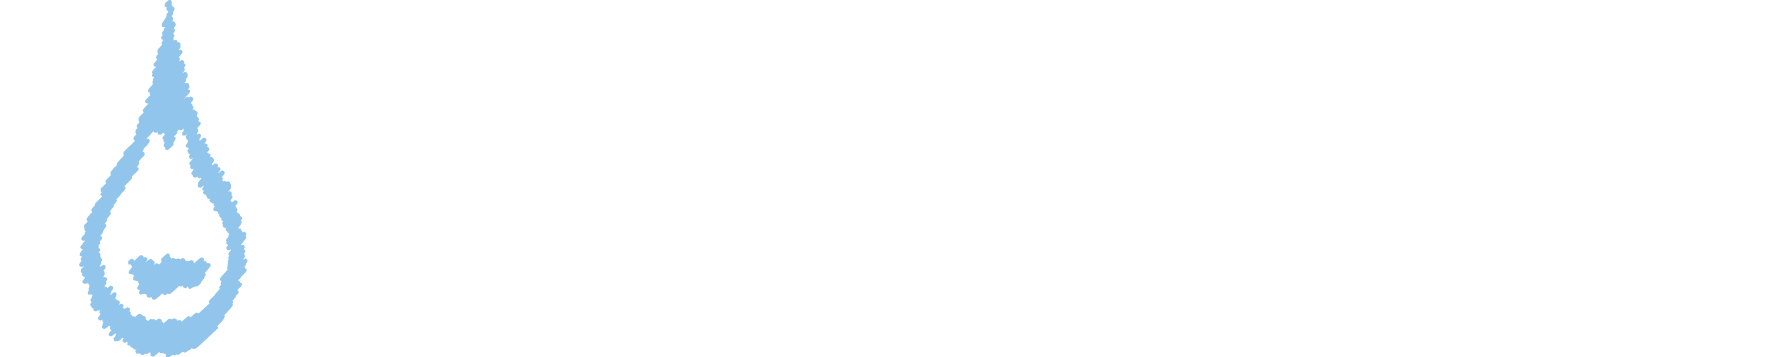 Utility Solutions Associates